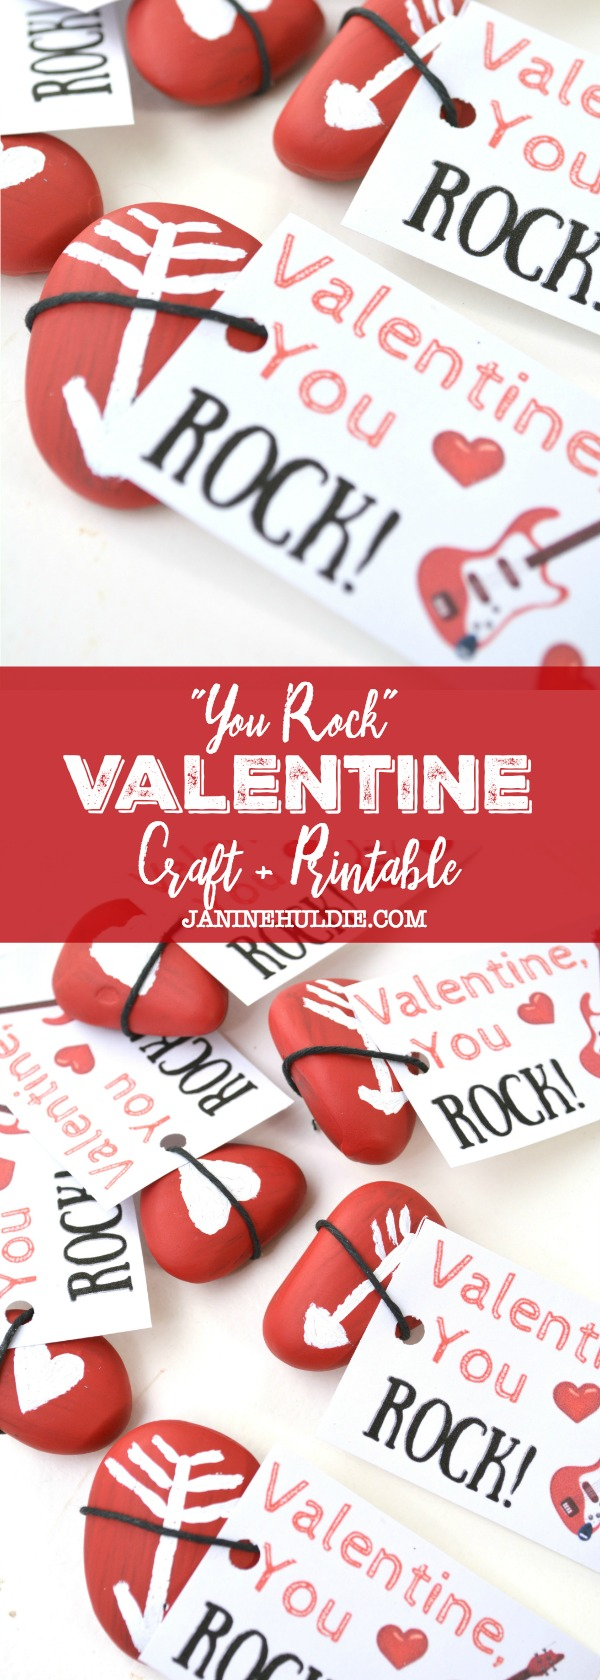 photo about You Rock Valentine Printable identify Uncomplicated and Exciting By yourself Rock Valentine Youngsters Paintable Craft